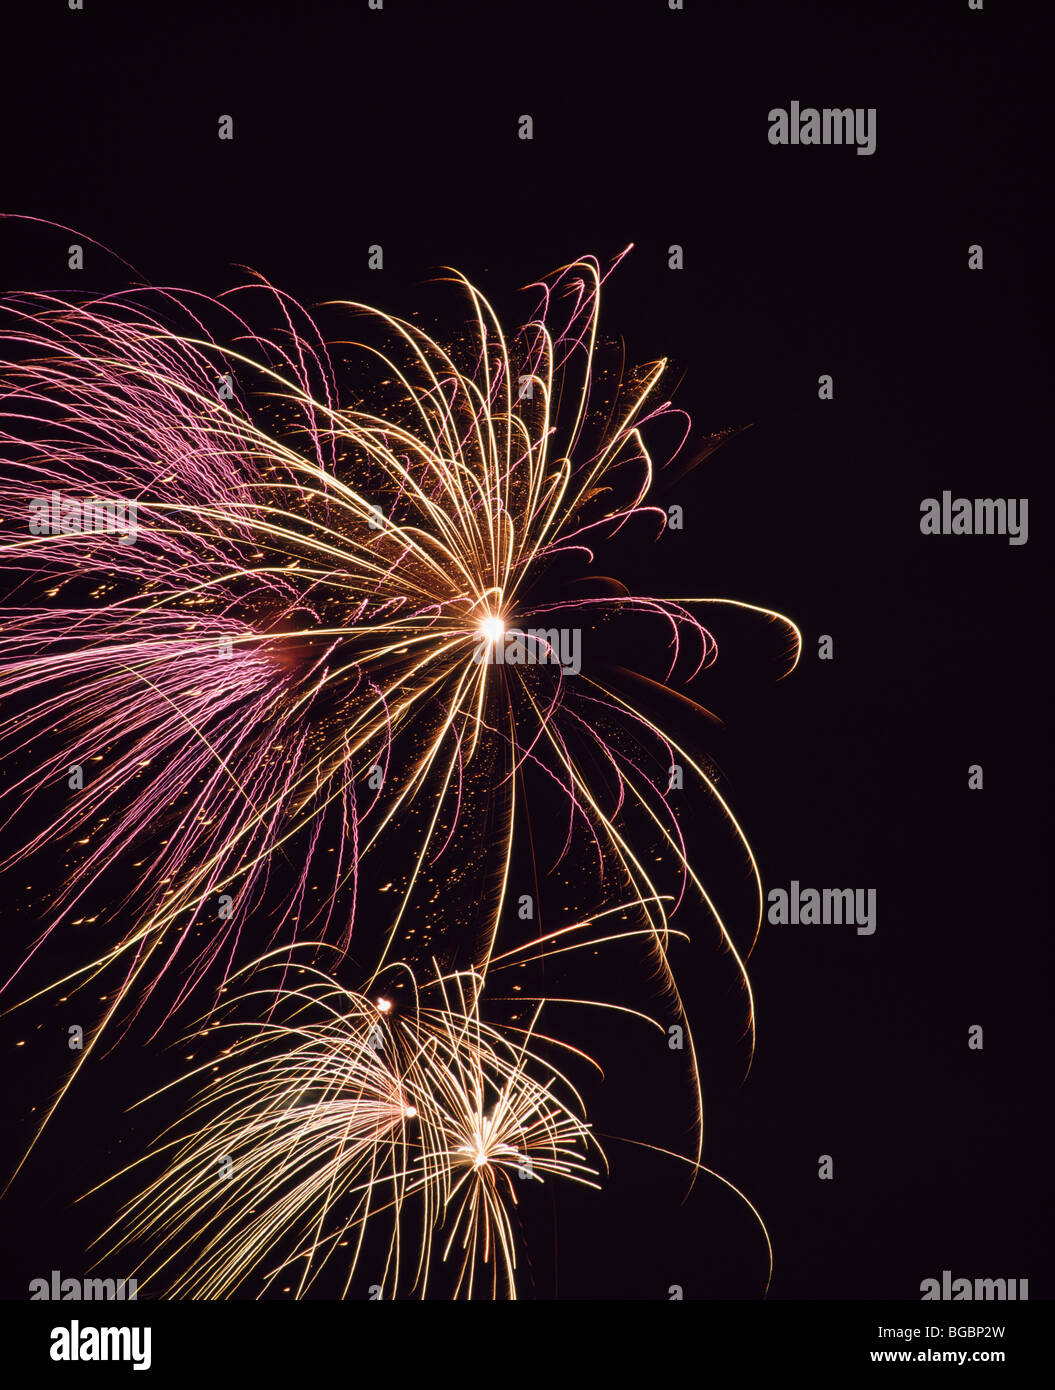 Fireworks; Montreal International Fireworks Competition, Quebec, Canada - Stock Image